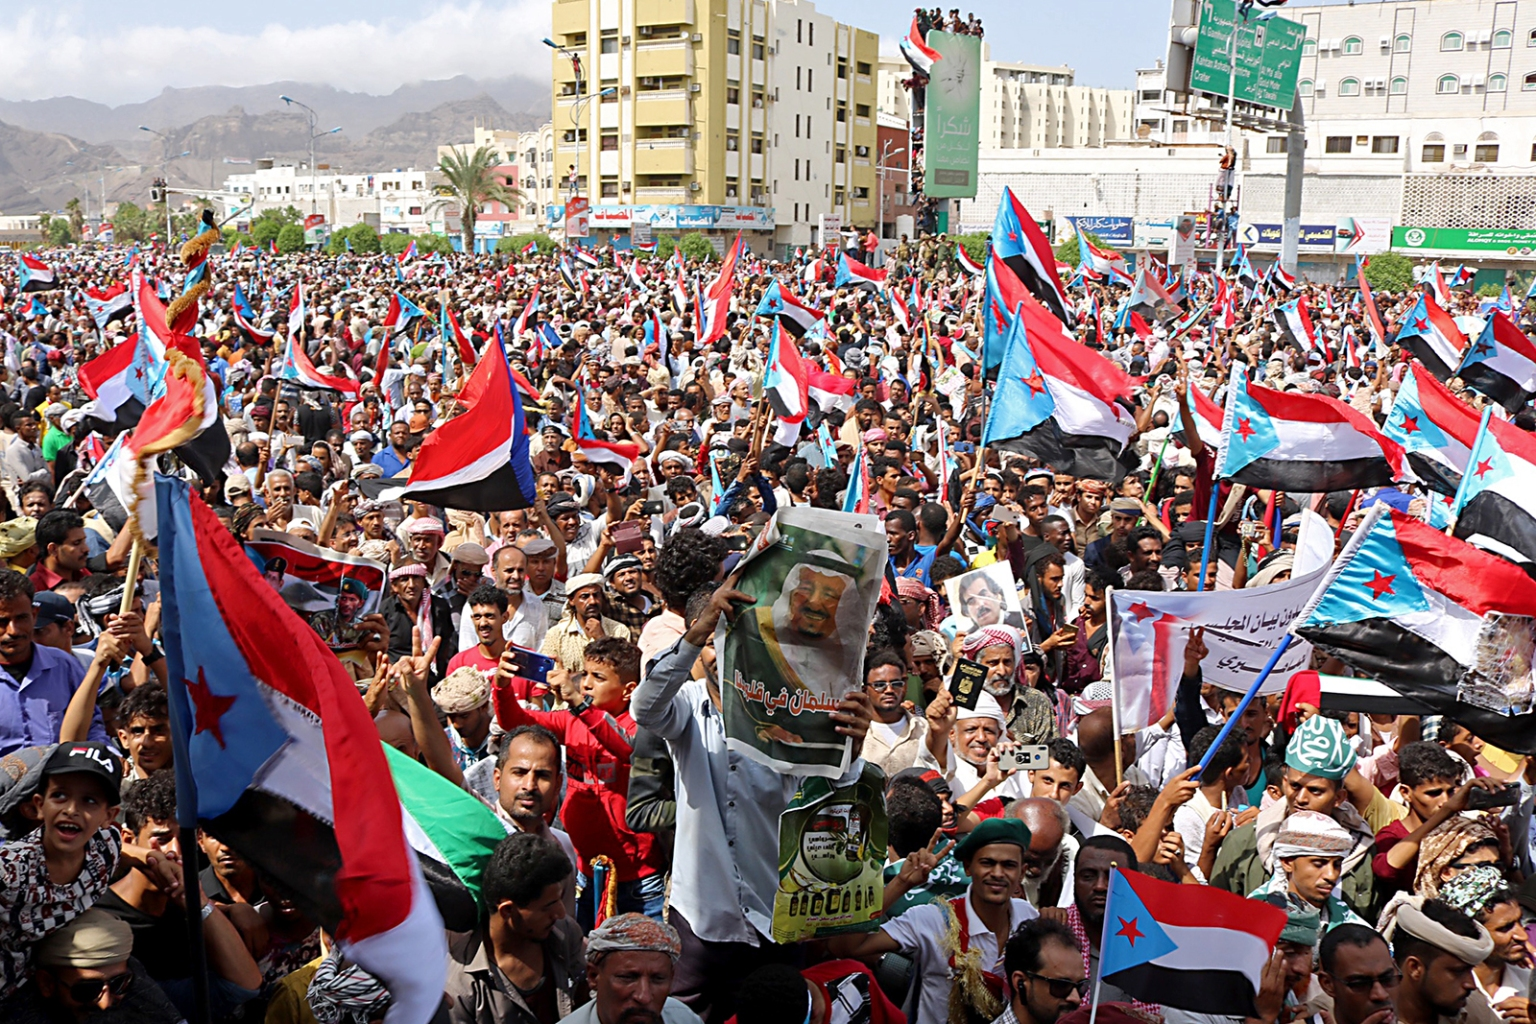 Supporters of Yemeni Southern separatists wave flags of the former South Yemen (The People's Democratic Republic of Yemen) as they demonstrate in the Khormaksar district of Aden on Aug. 15. Yemen's government ruled out talks with the separatists until they withdraw from positions seized last week in Aden. NABIL HASAN/AFP/Getty Images